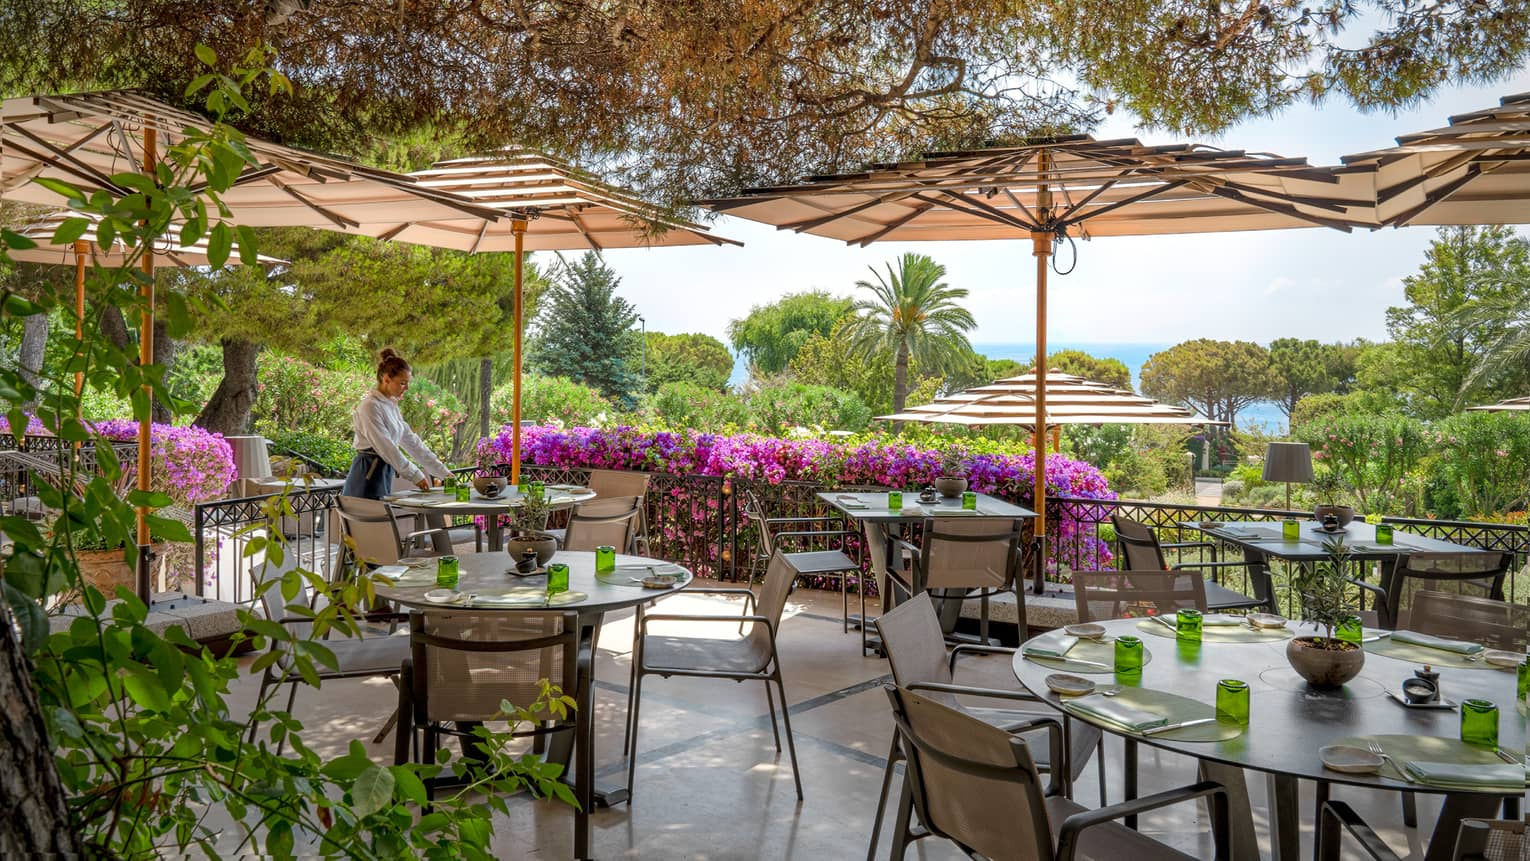 Waiter sets a table on outdoor restaurant terrace, surrounded by greenery and magenta-coloured flowers